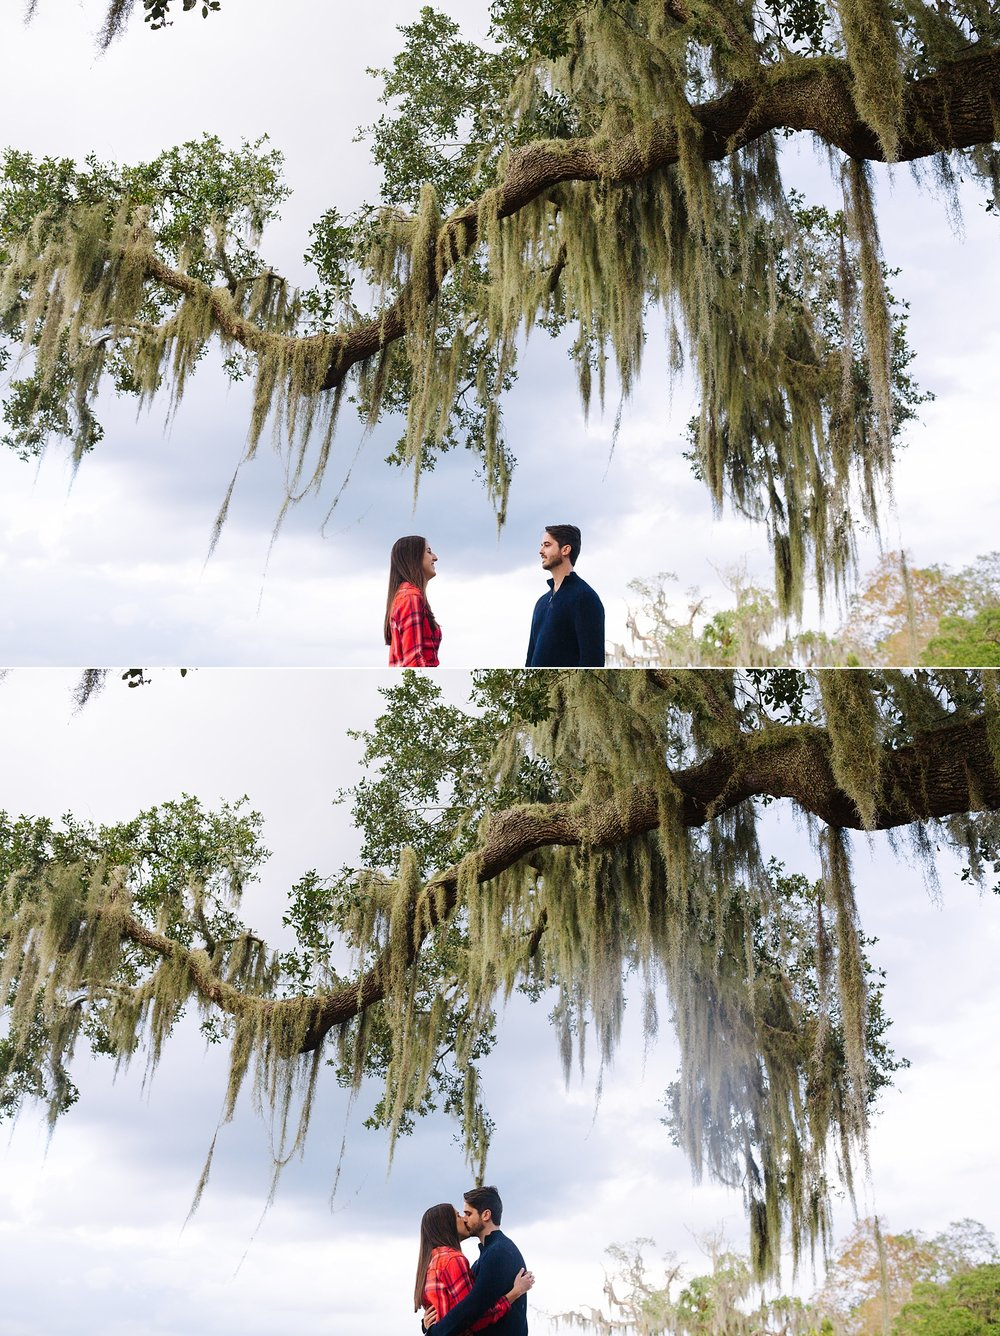 Jake & Katie Photography Seminole Heights Engagement Photos David & Cailyn-010.jpg